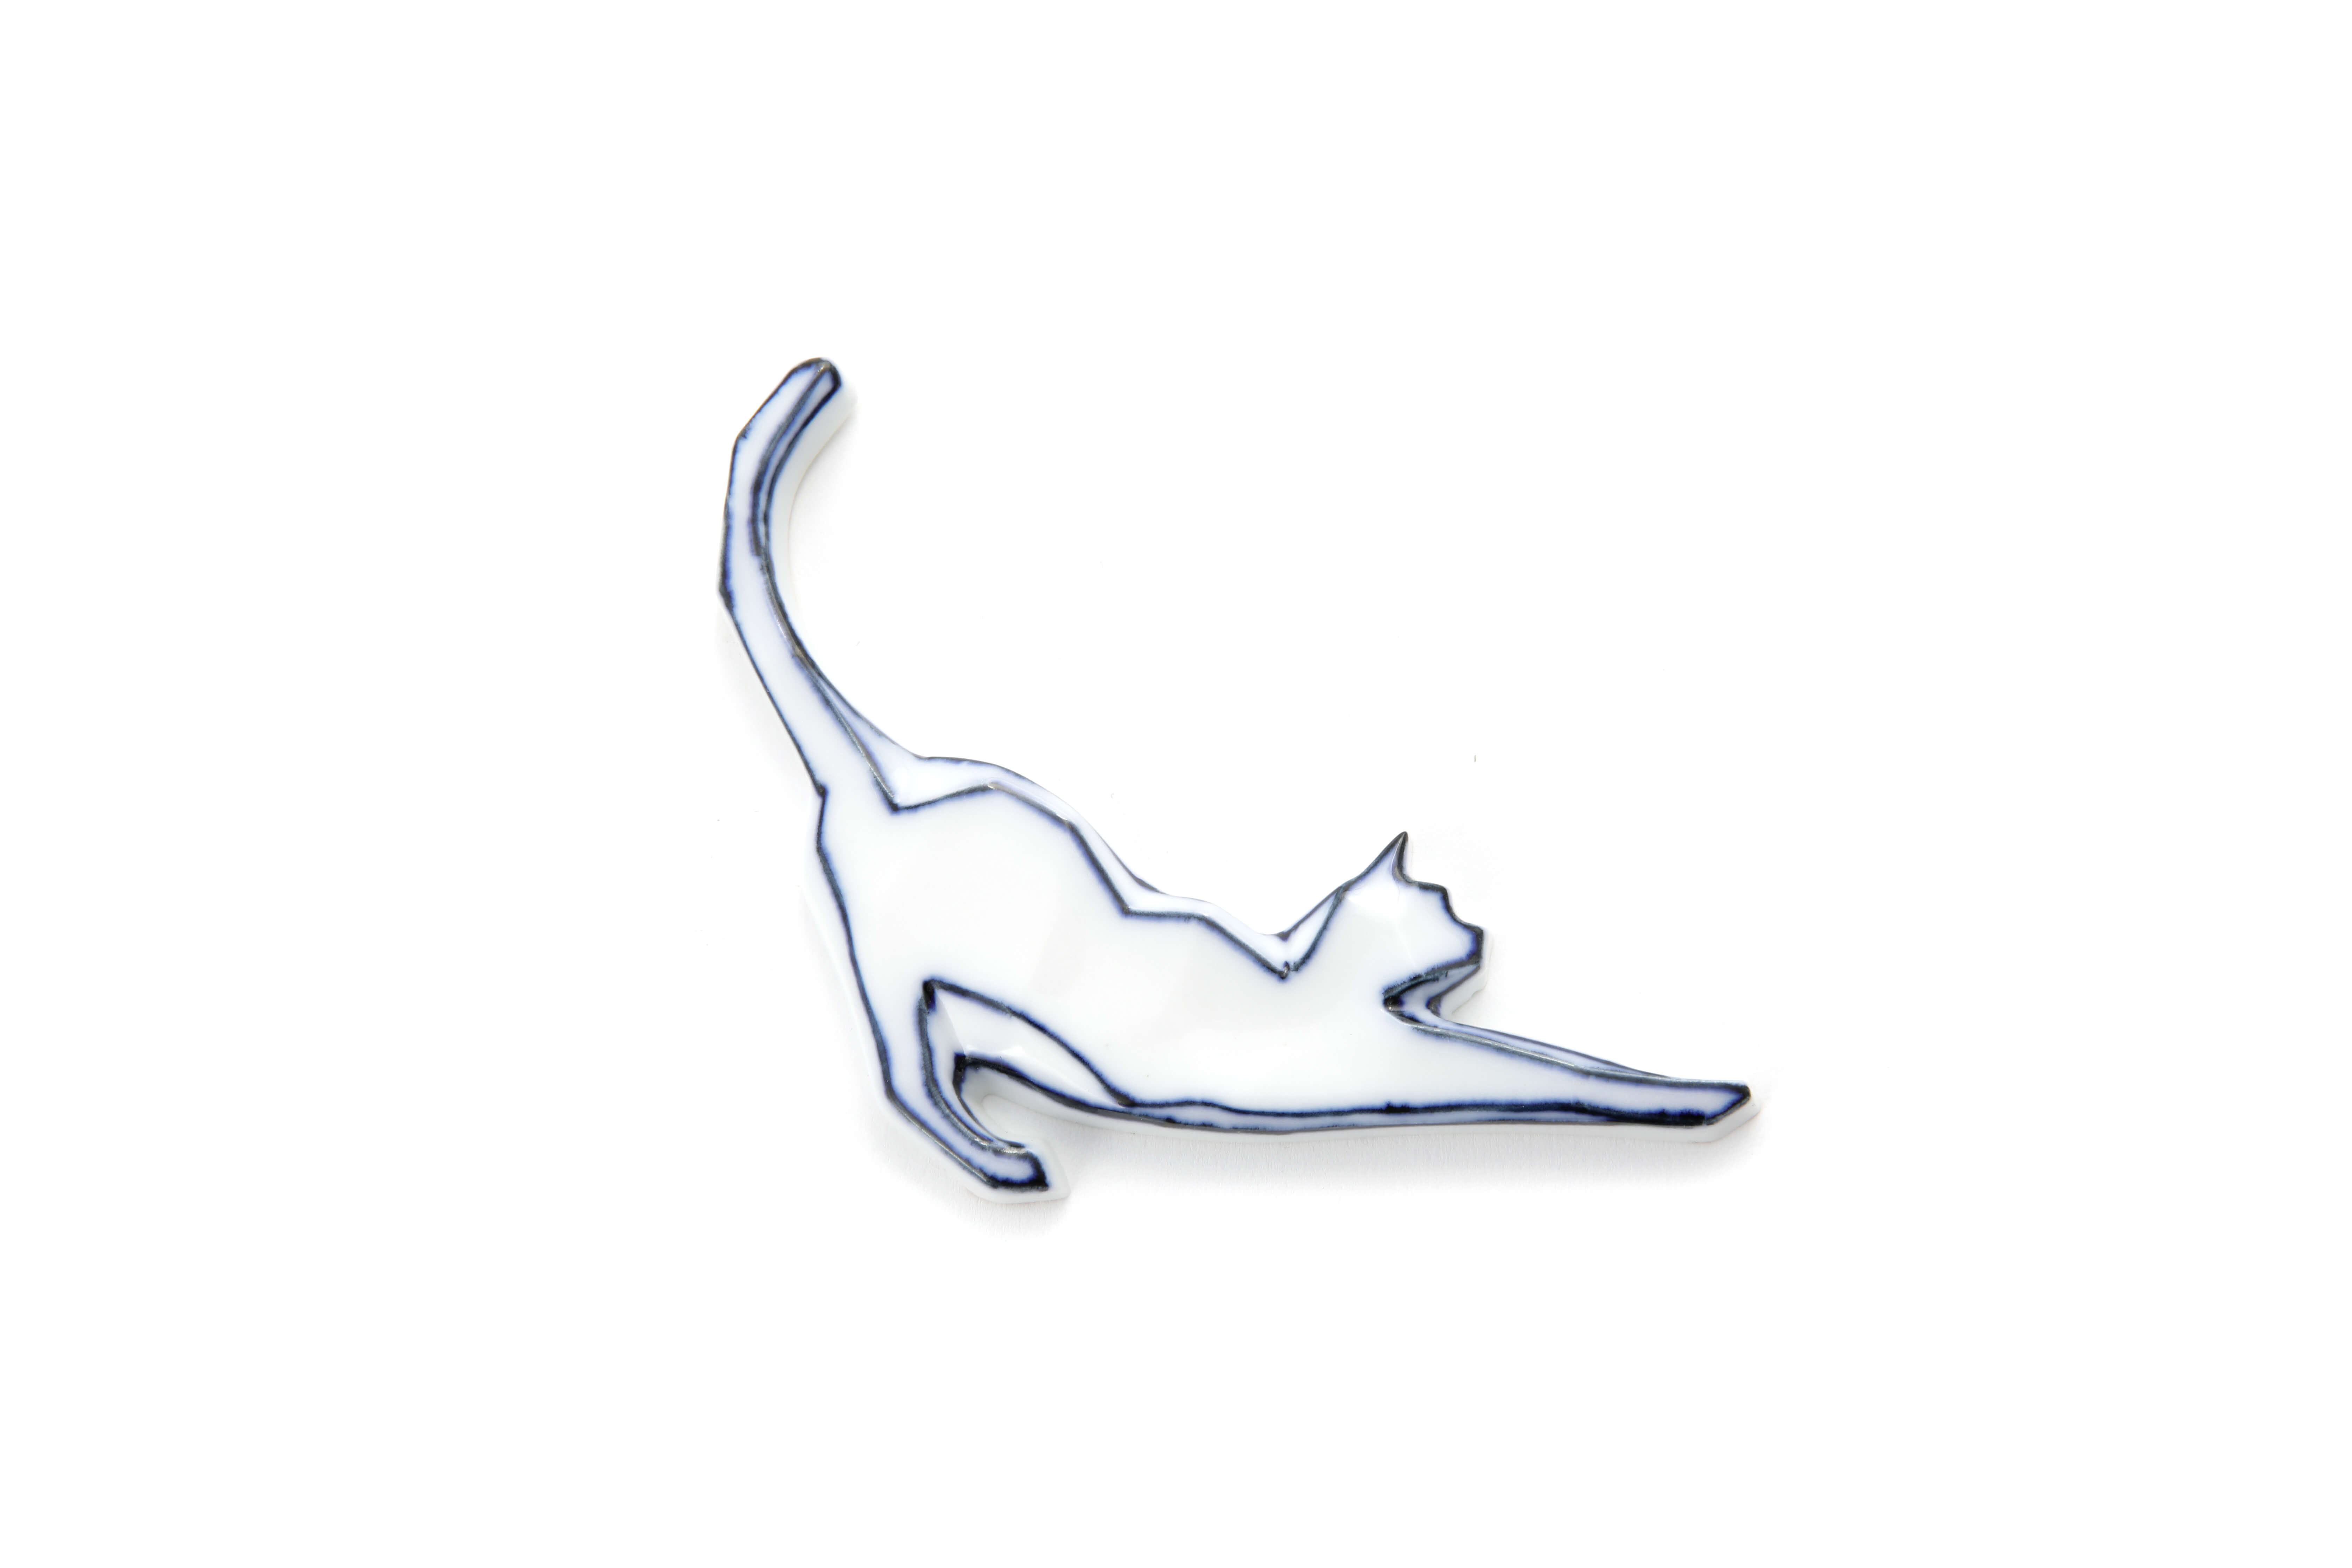 Handmade Cat-shaped Chopstick Holder with Blue Lines - Stretching Cat